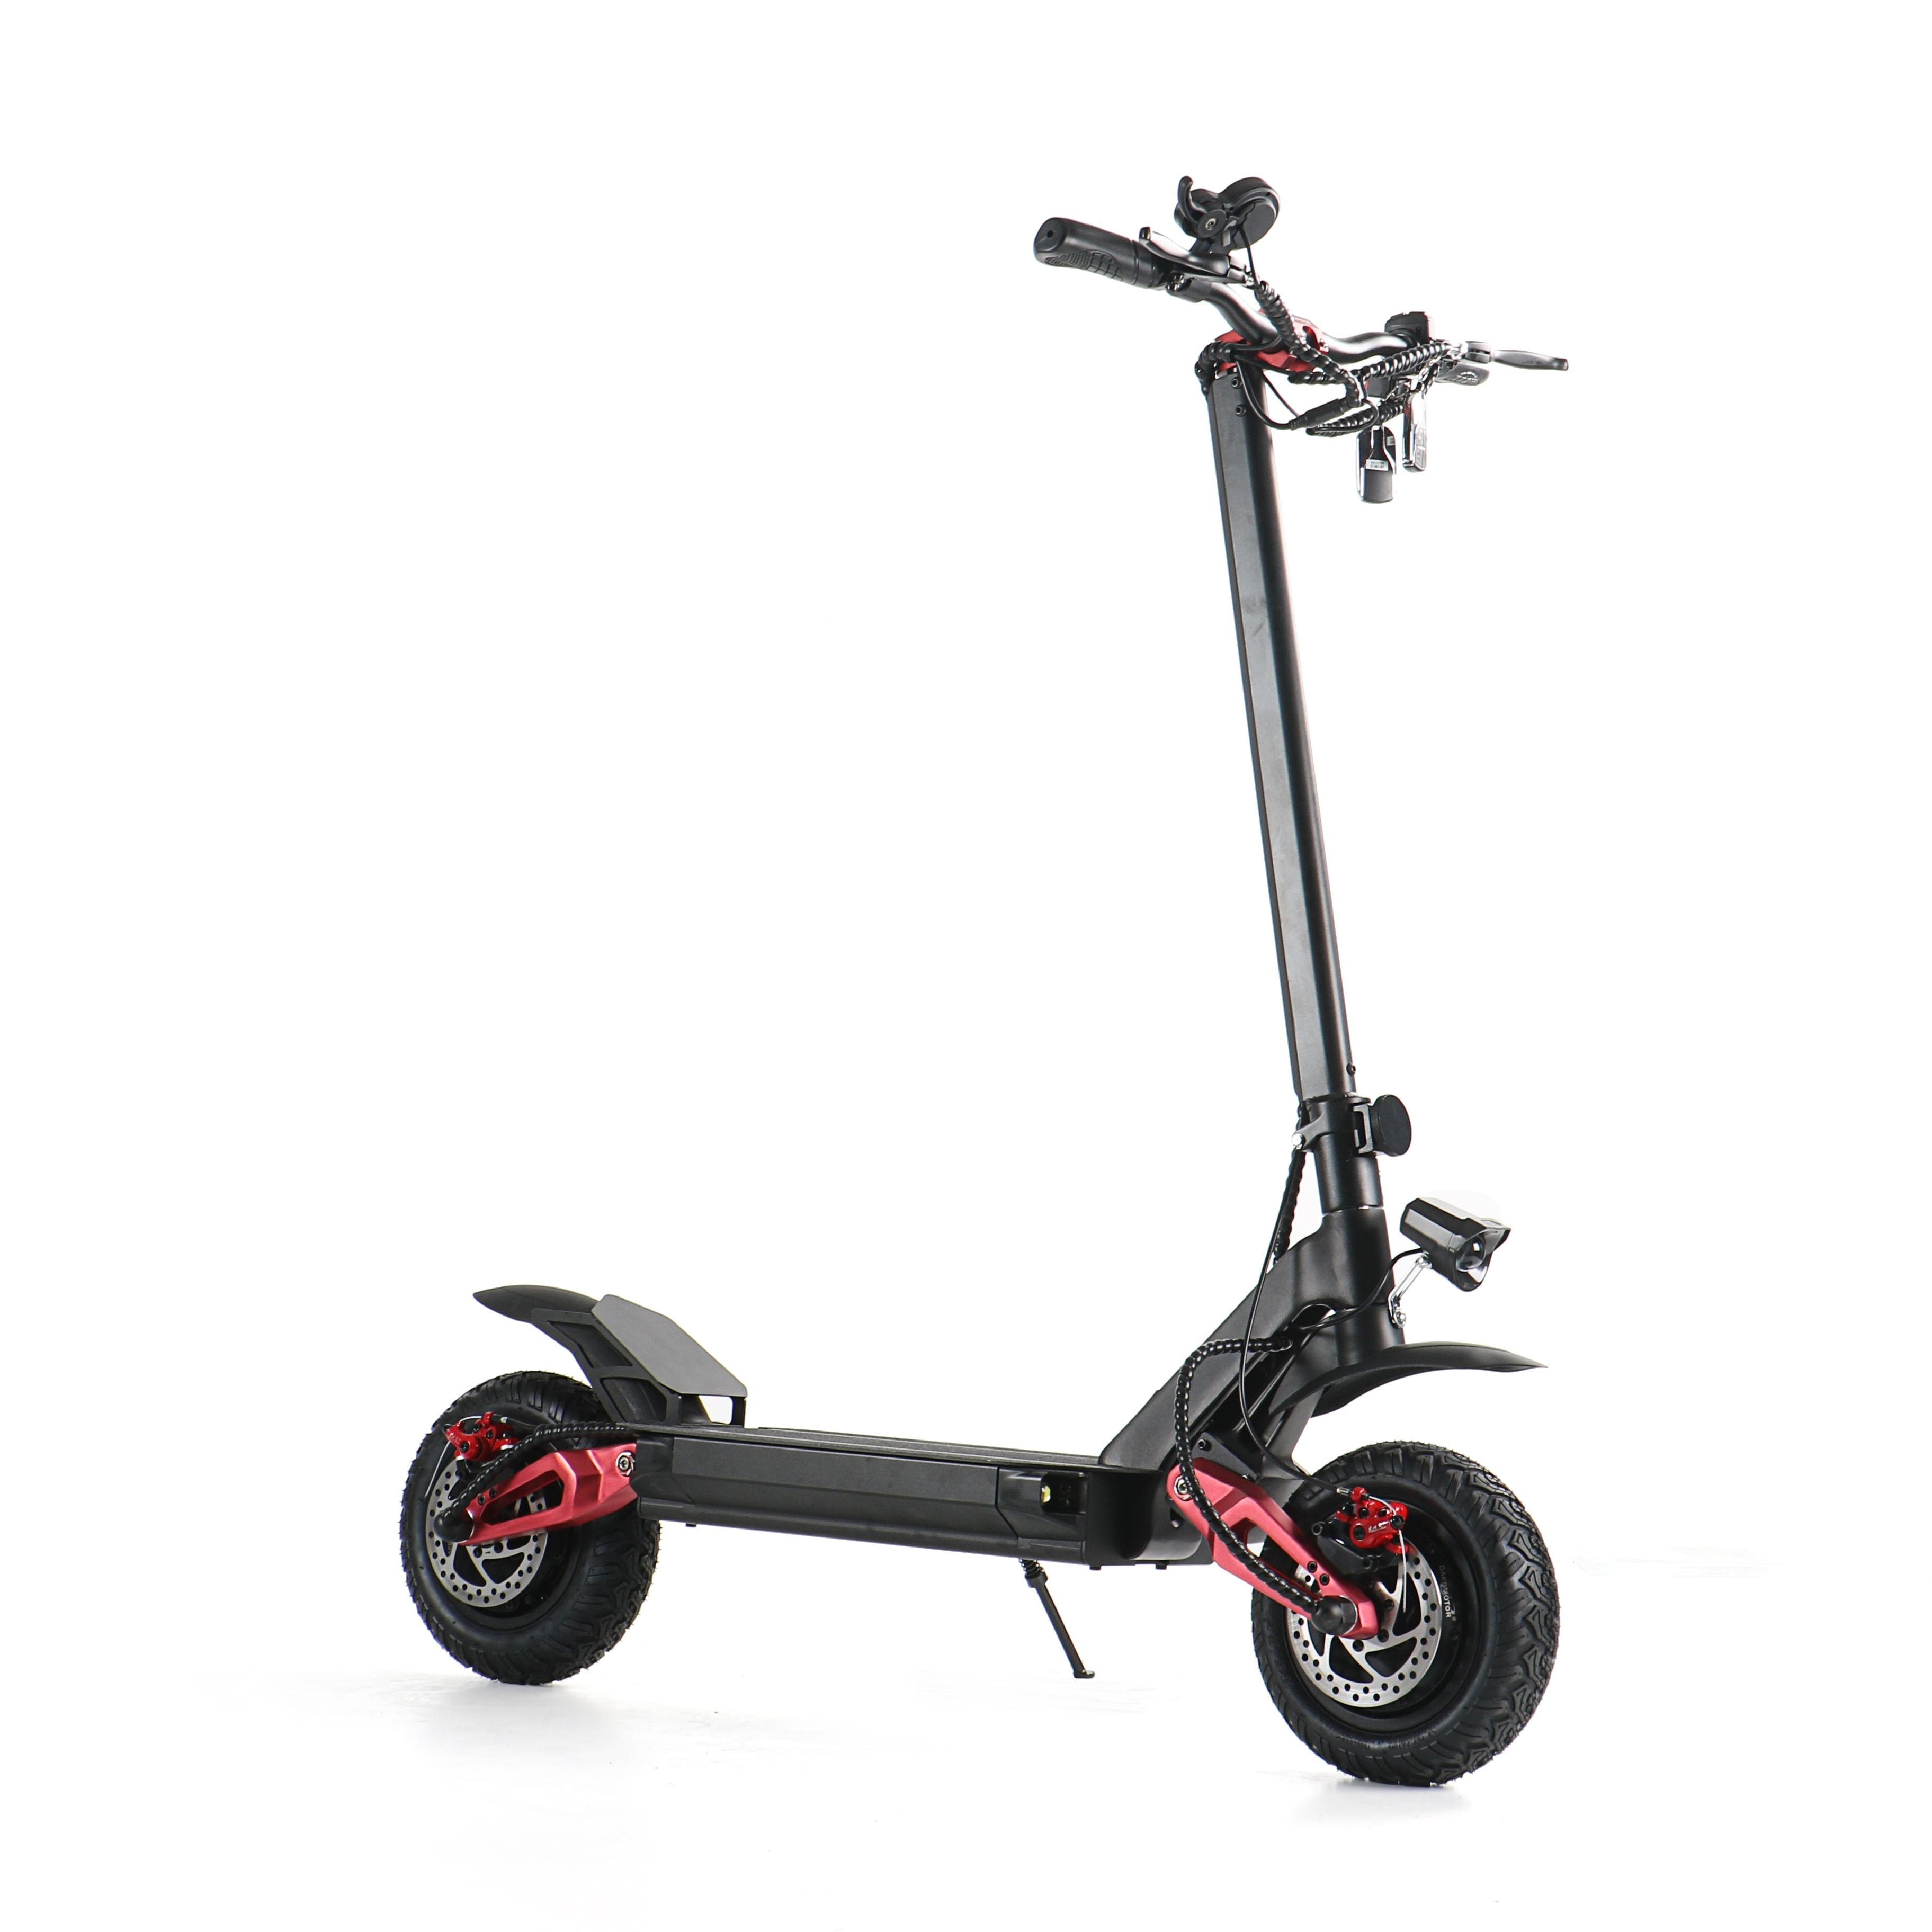 Fast Speed 70km/h Fast foldable electric scooter 3600w,scooter electric adult,e scooter mobility scooter dual motor 20.8ah